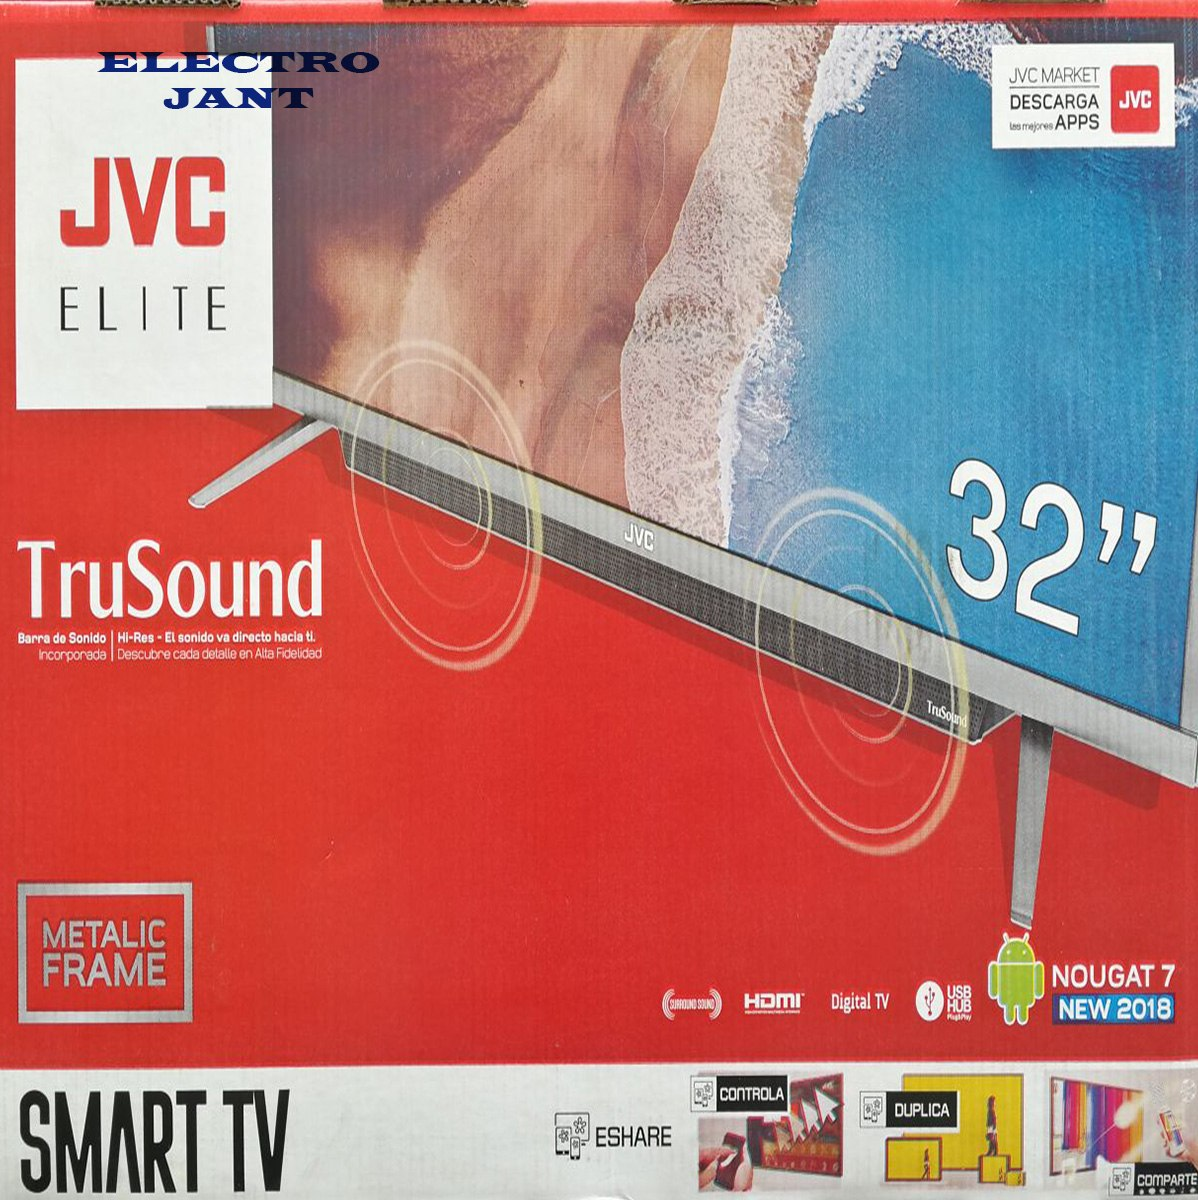 Manual Jvc Smart Tv 32 Portugues